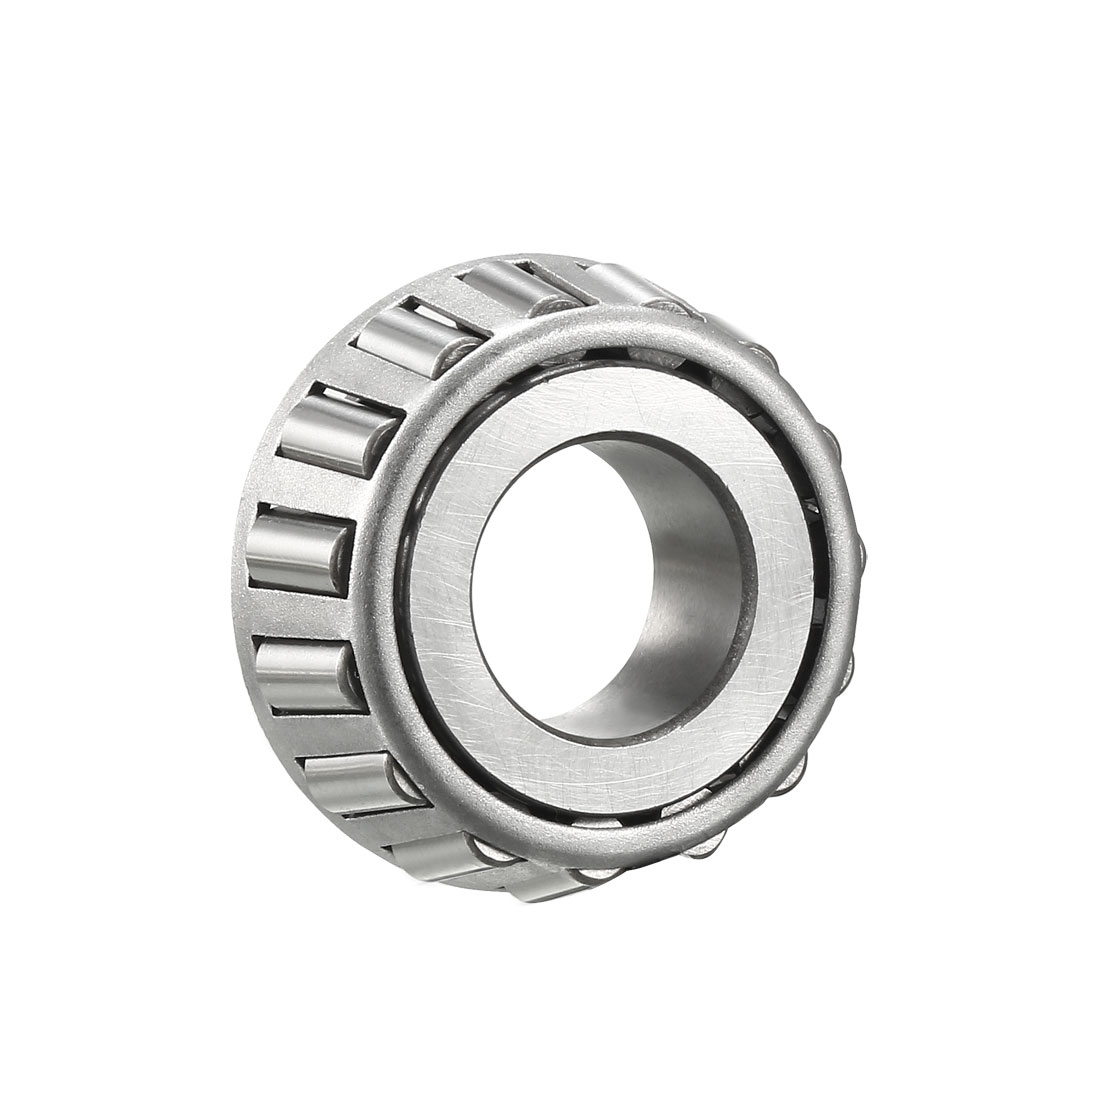 "15101 Tapered Roller Bearing Single Cone 1"" Bore 0.8125"" Width"